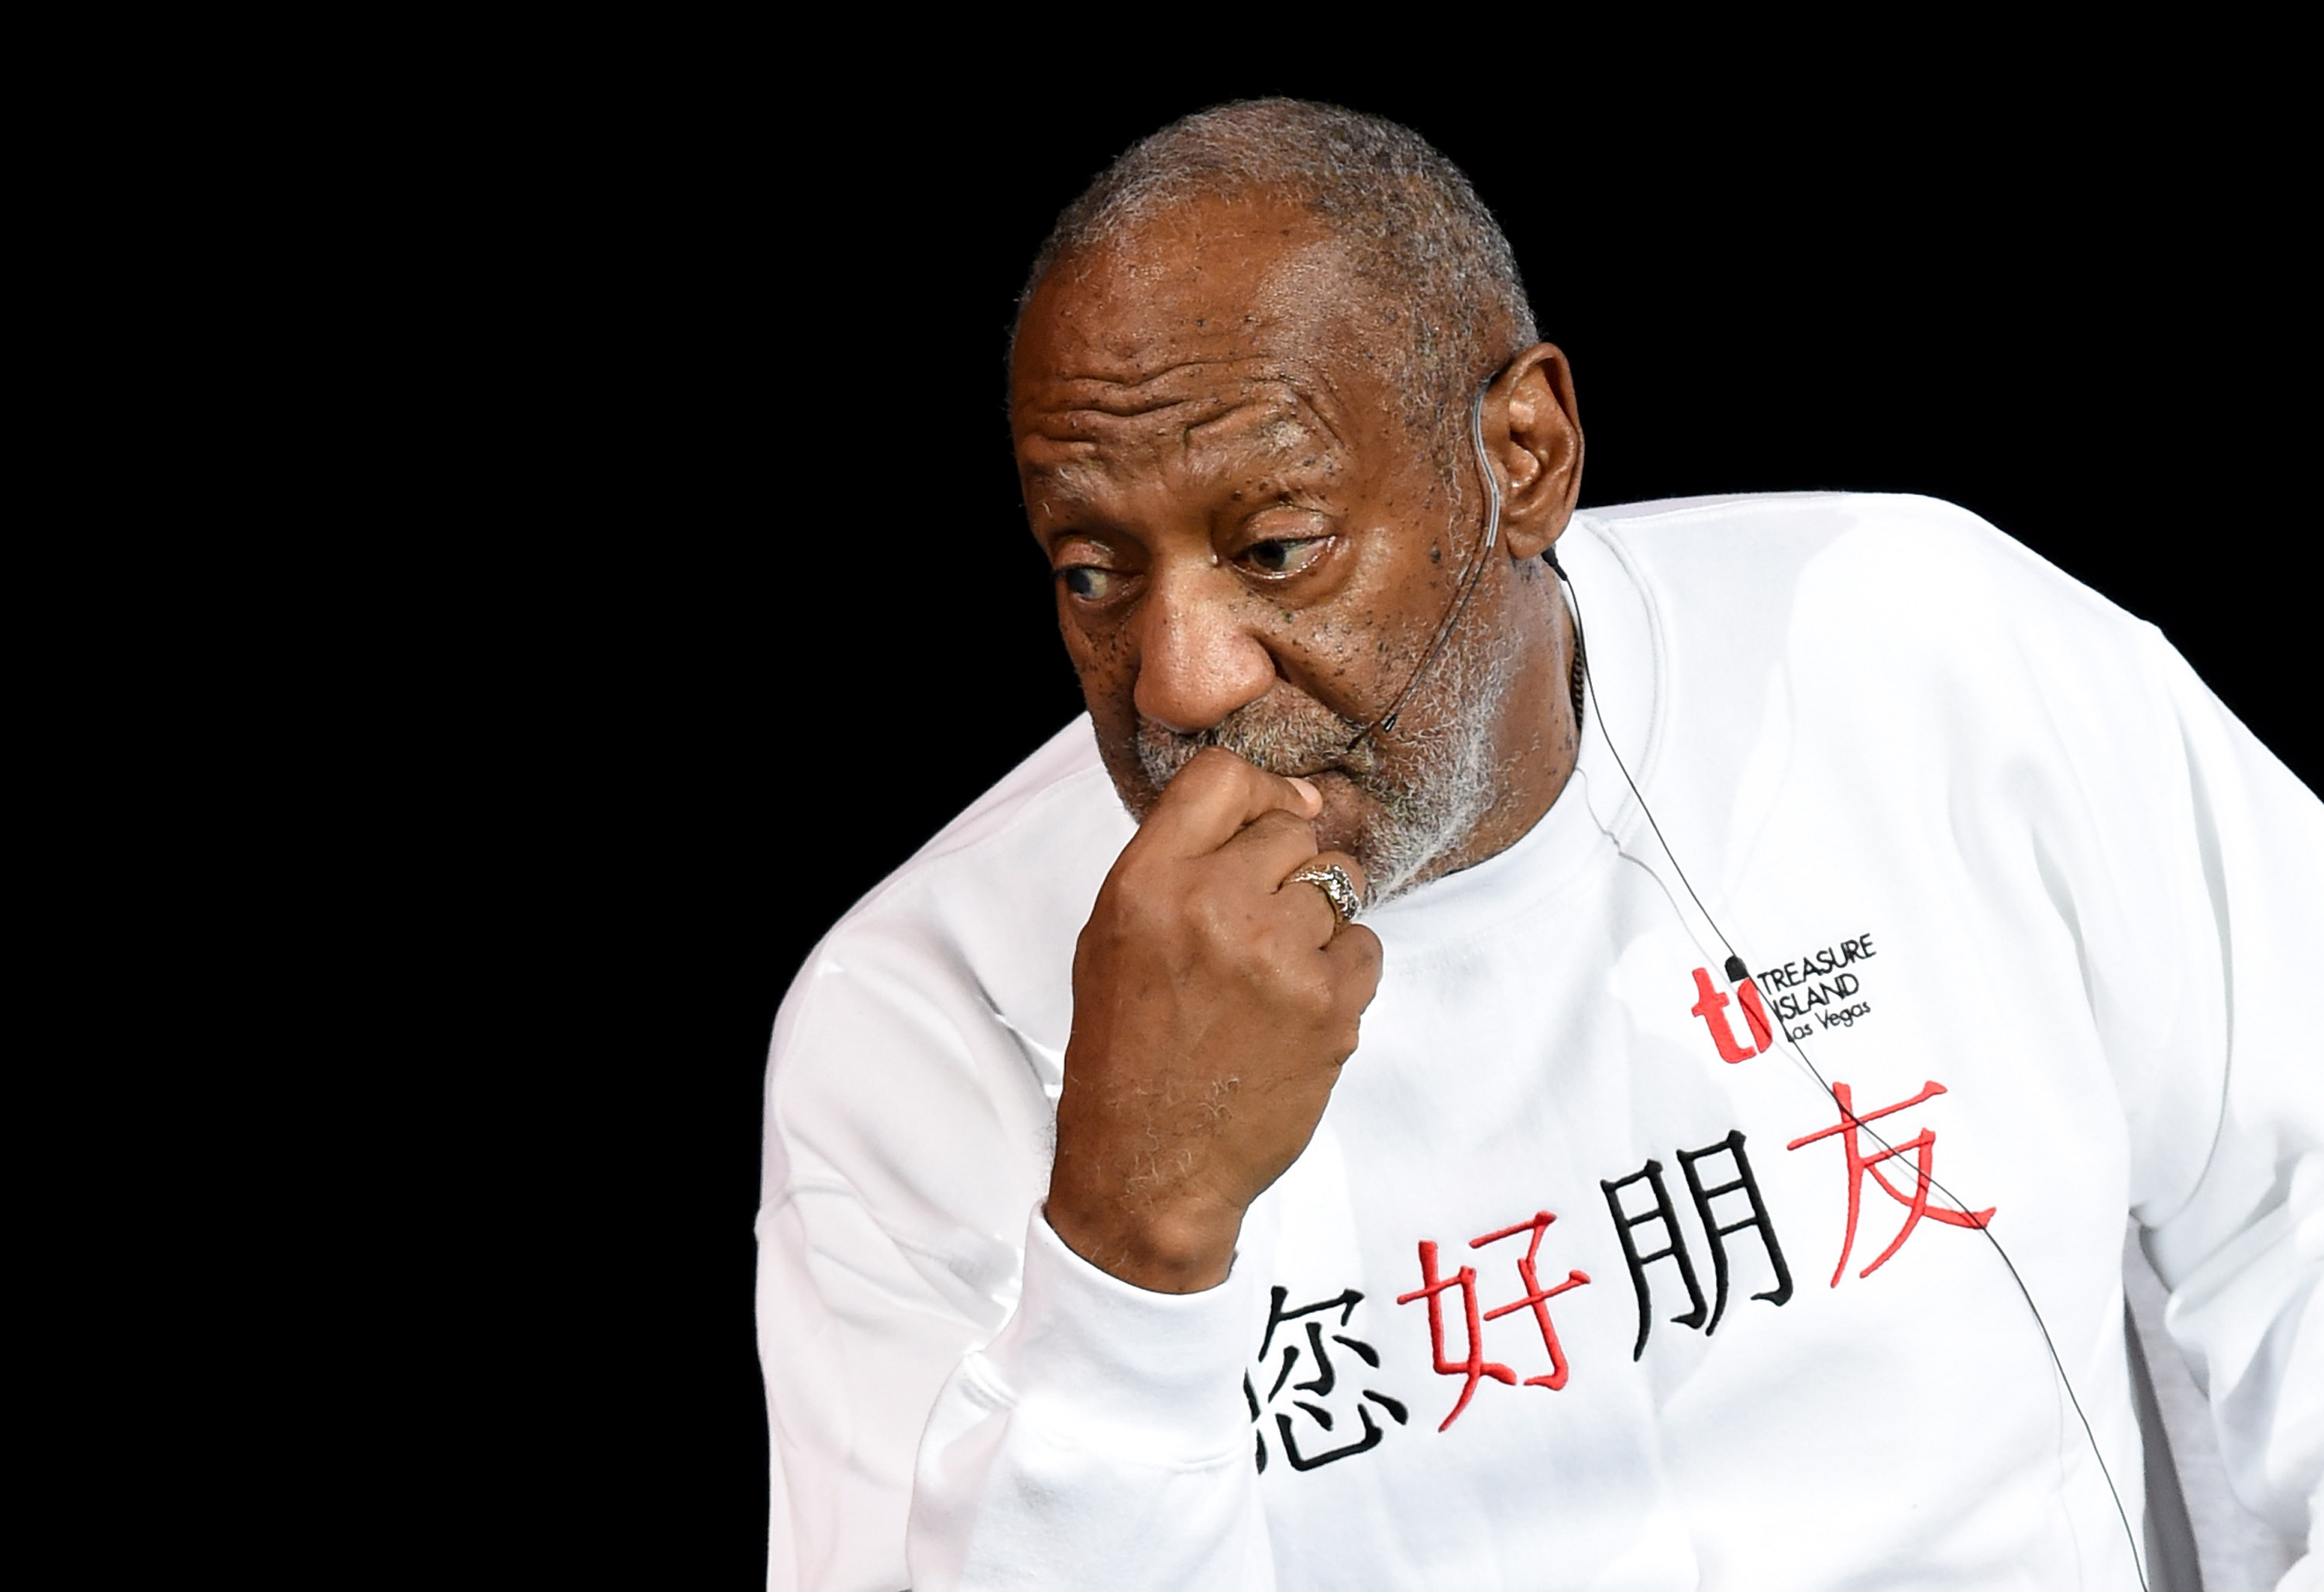 Bill Cosby performs at the Treasure Island Hotel and Casino on Sept. 26, 2014 in Las Vegas.